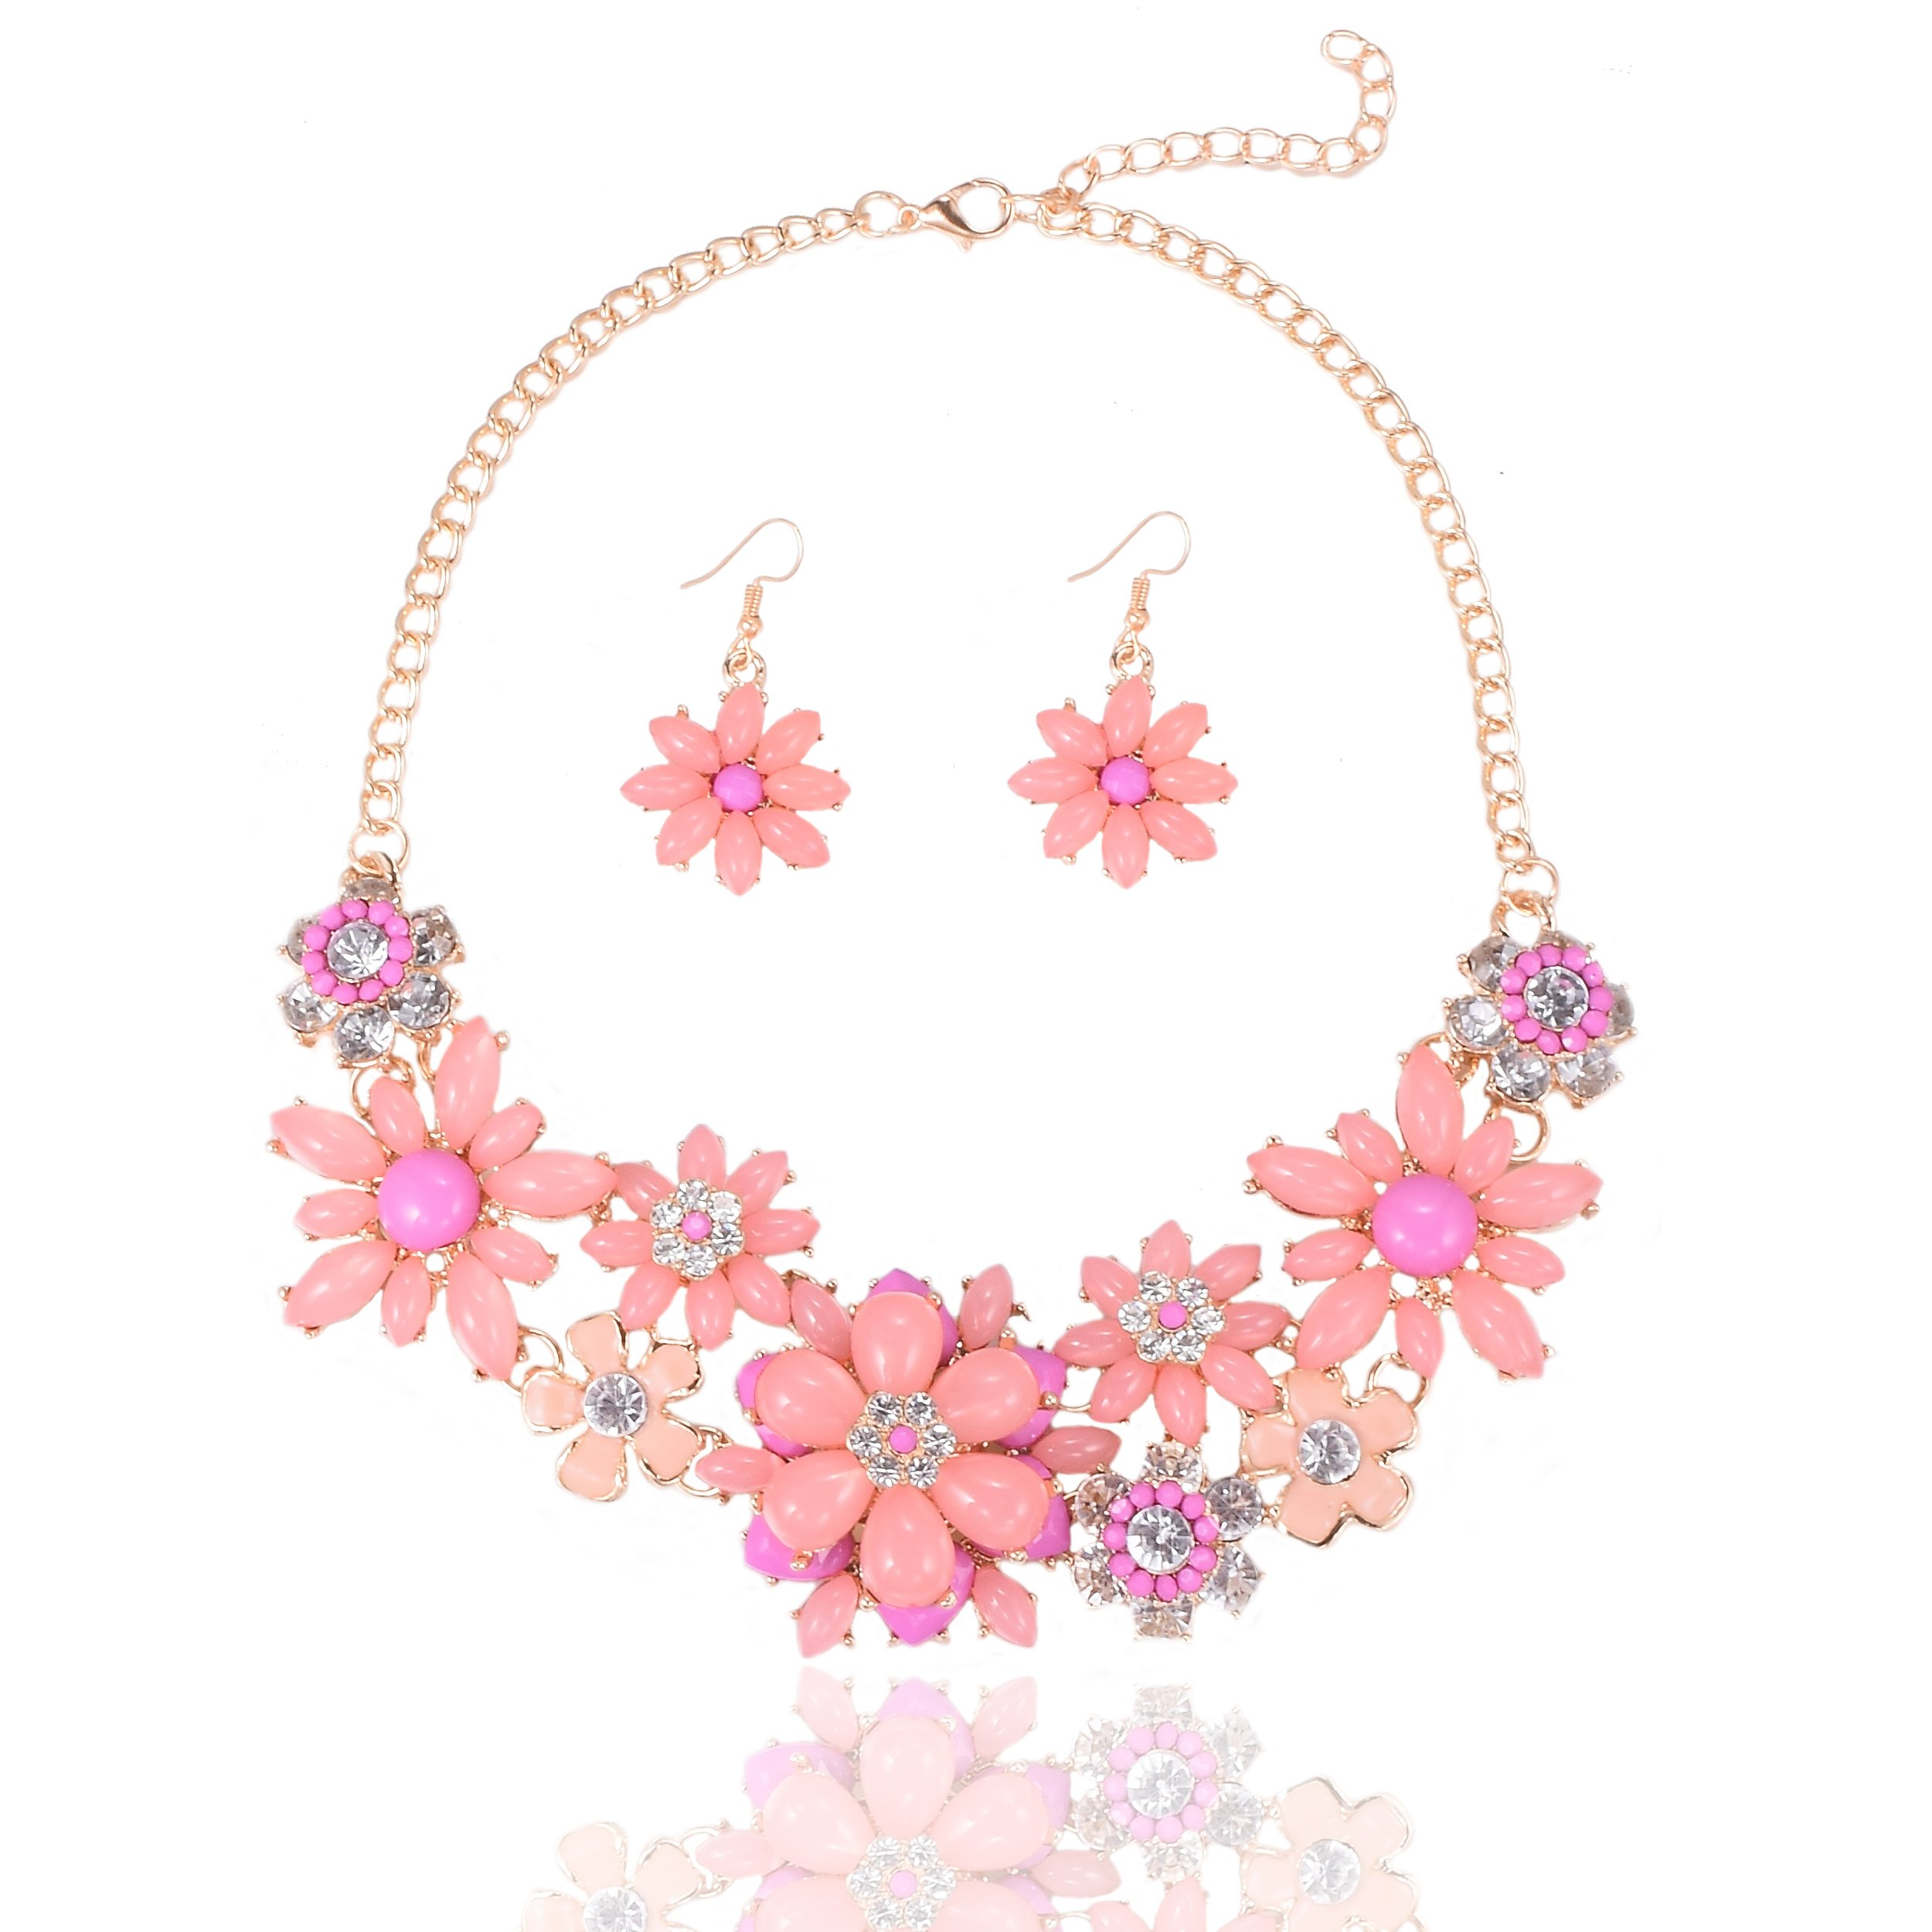 Yuhuan Flower Chunky Statement Necklace Rhinestone Costume Jewelry for Women (Pink-1)